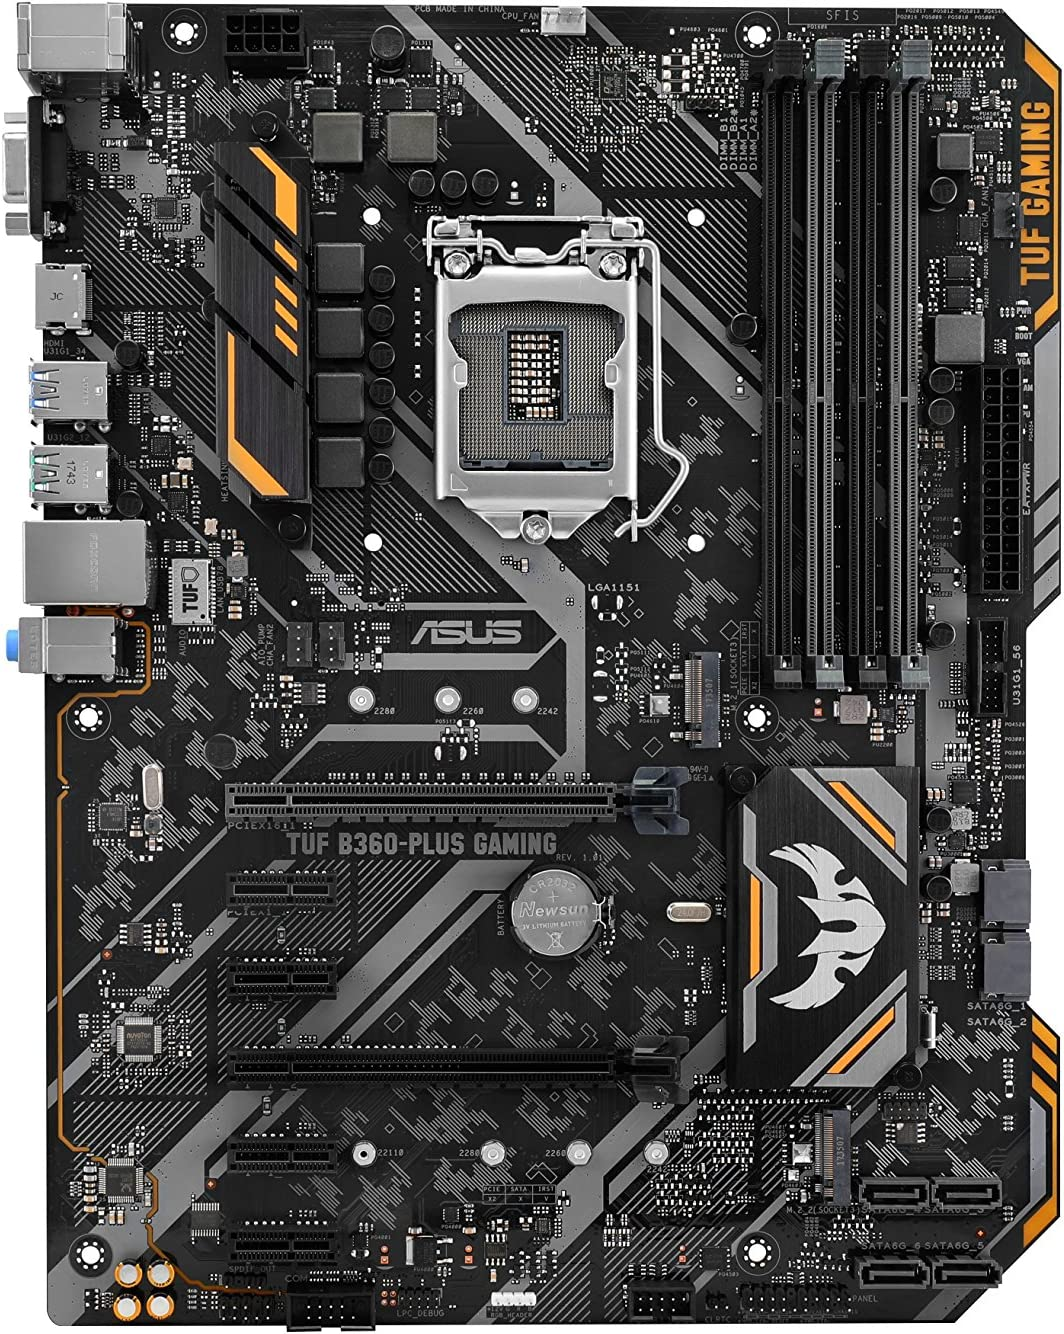 ASUS TUF B360-PLUS Gaming Scheda Madre Gaming Intel B360 con Illuminazione Aura Sync RGB, Supporto DDR4 2666 MHz, 16 Gbps M.2, Intel Optane Memory Ready e USB 3.1 Gen 2